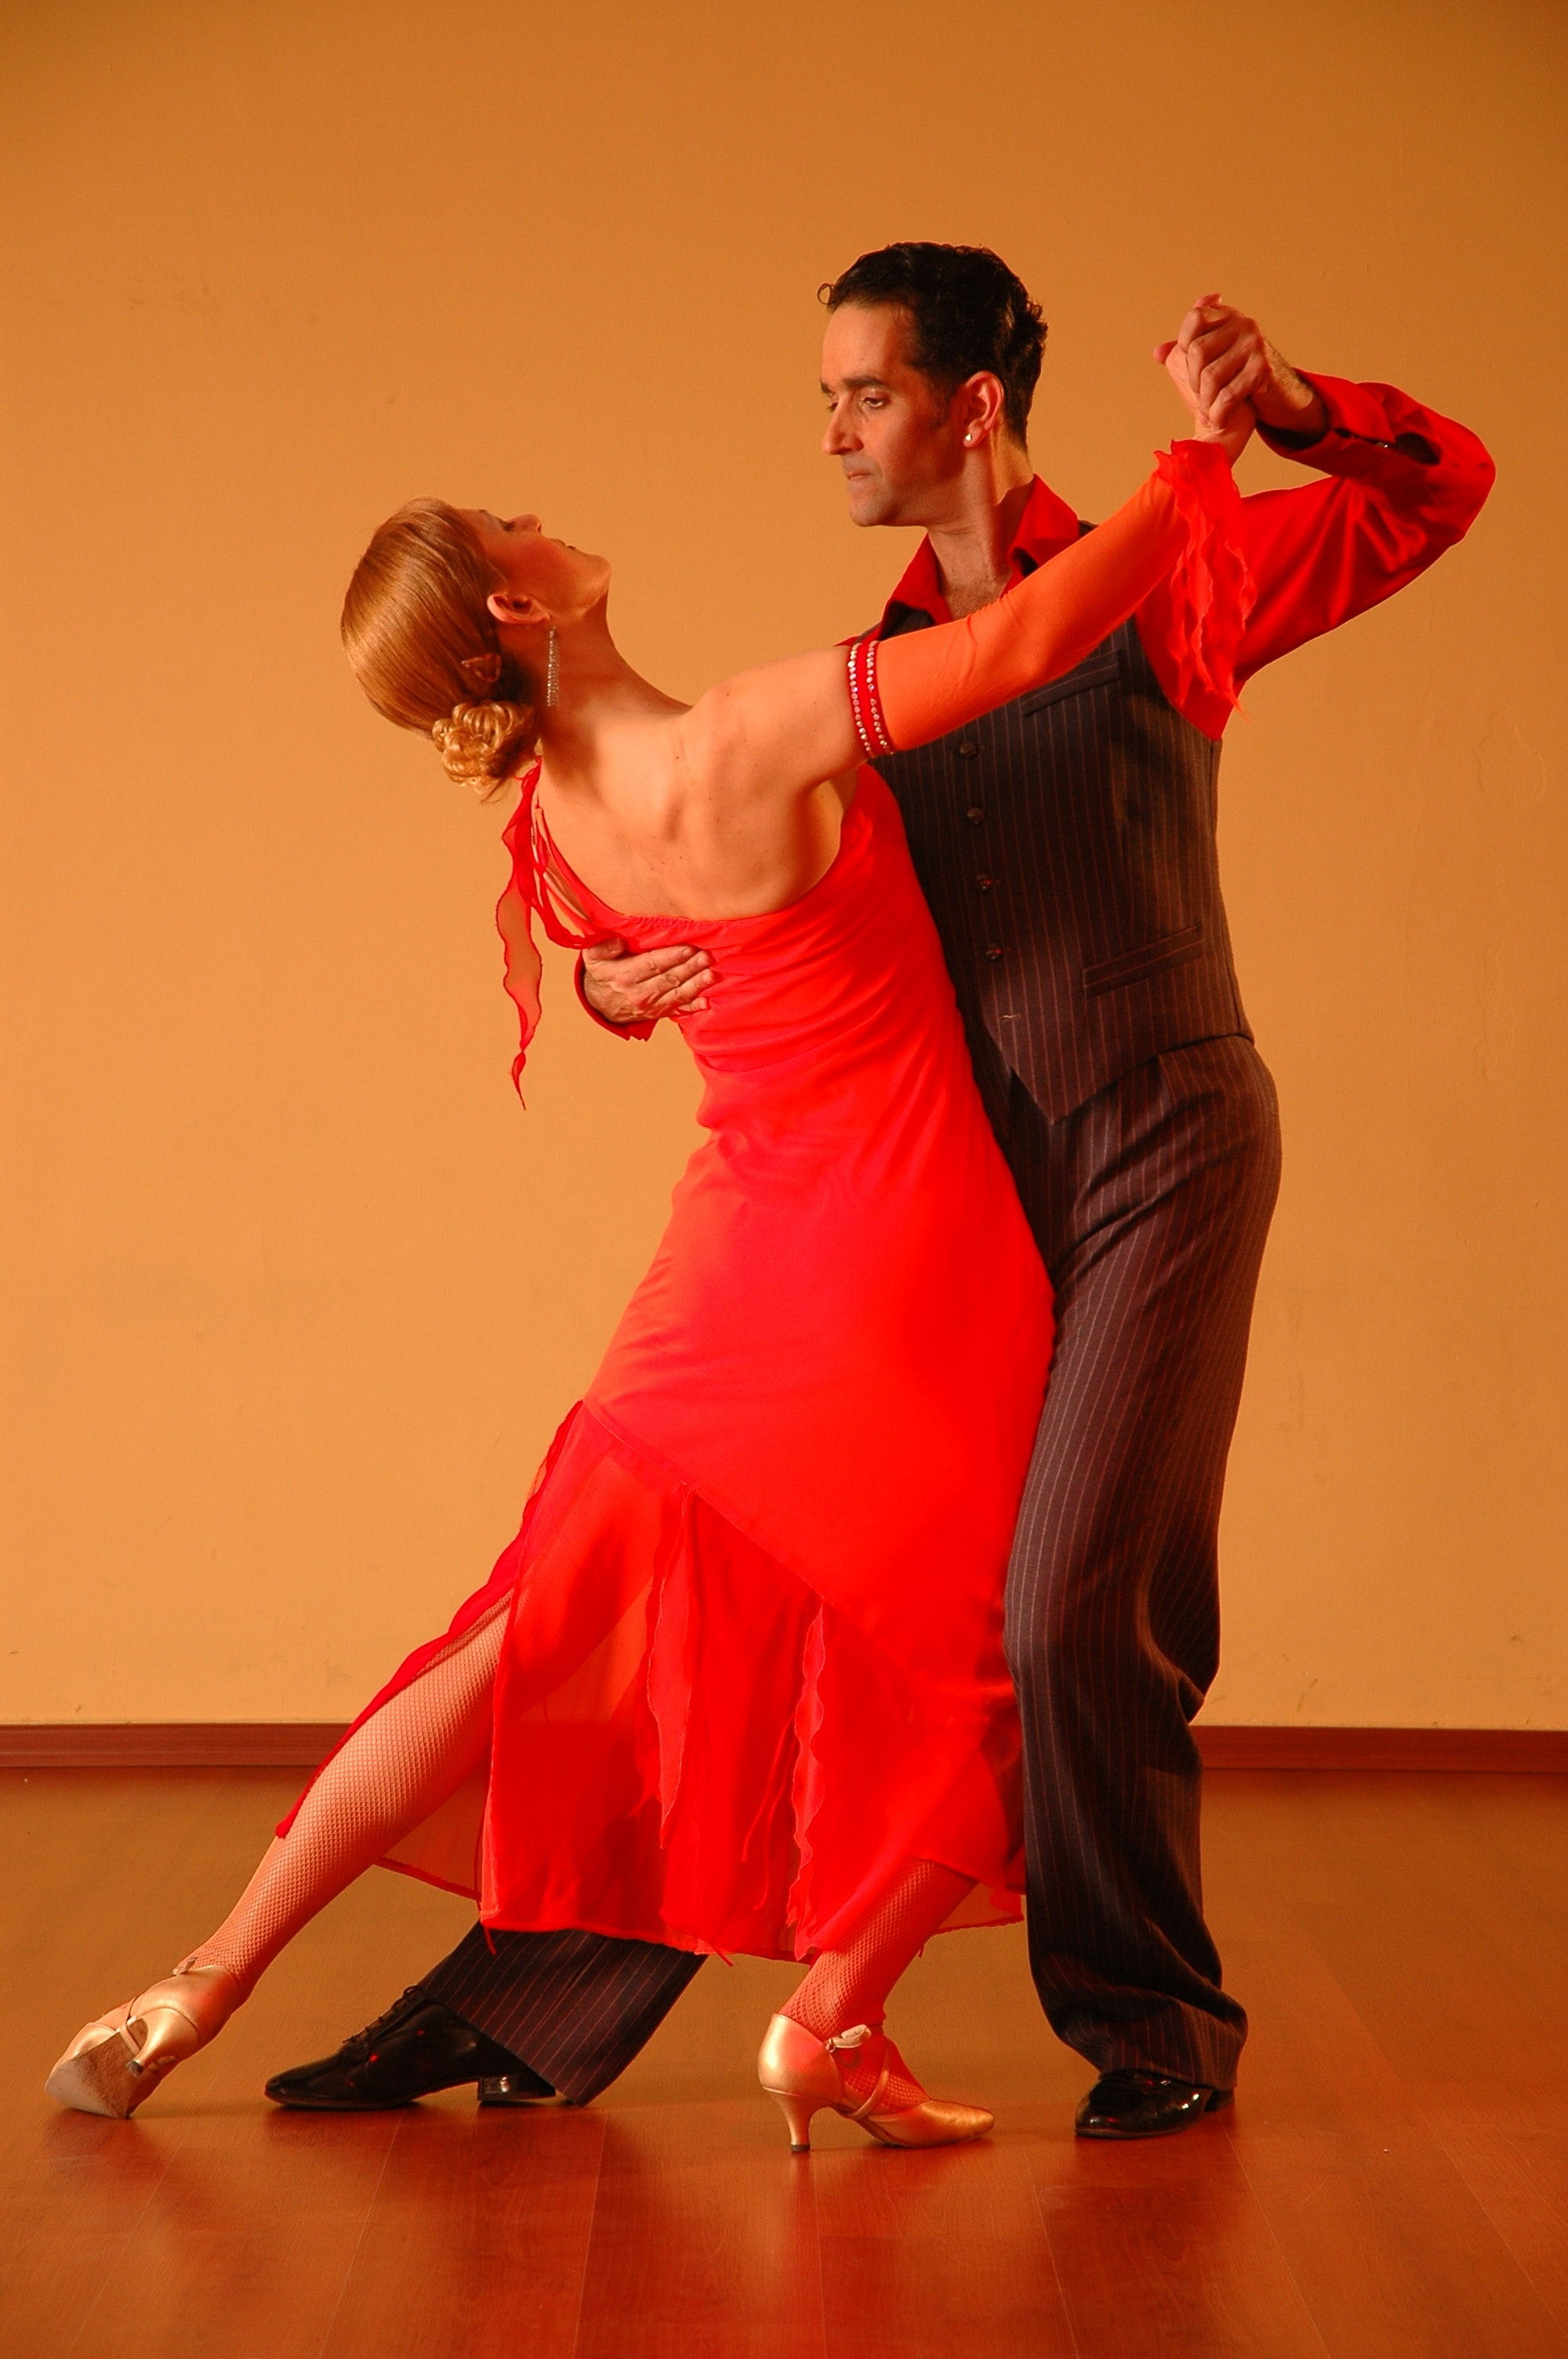 Free Stock Photo Of Ballroom Dance Dancing